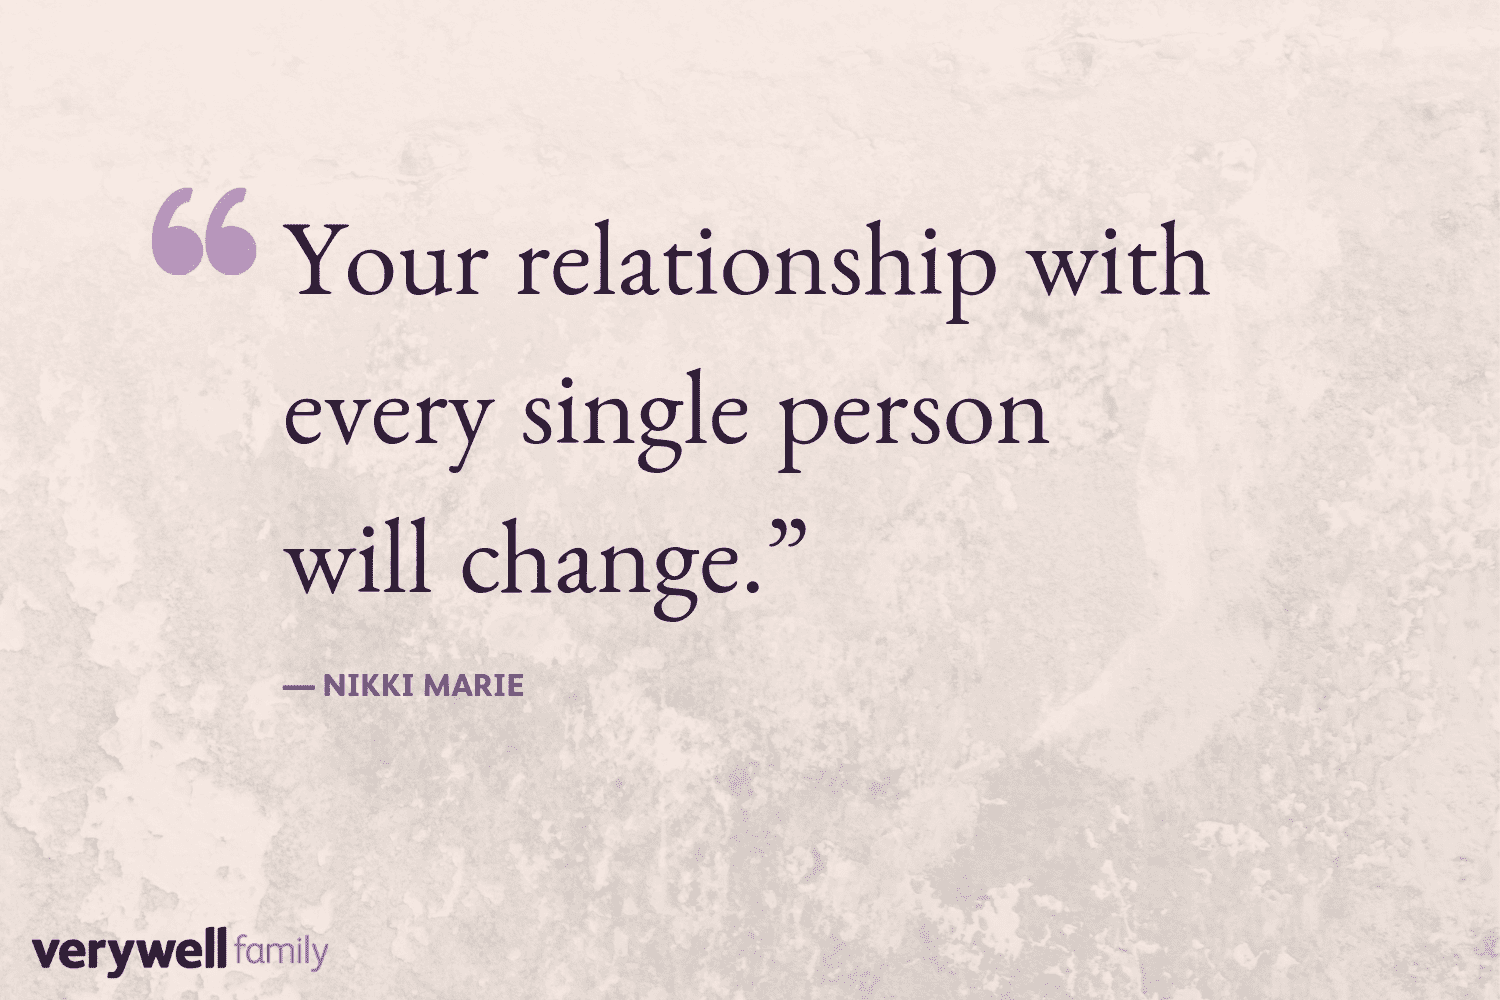 Verywell Family postpartum quote by Nikki Marie